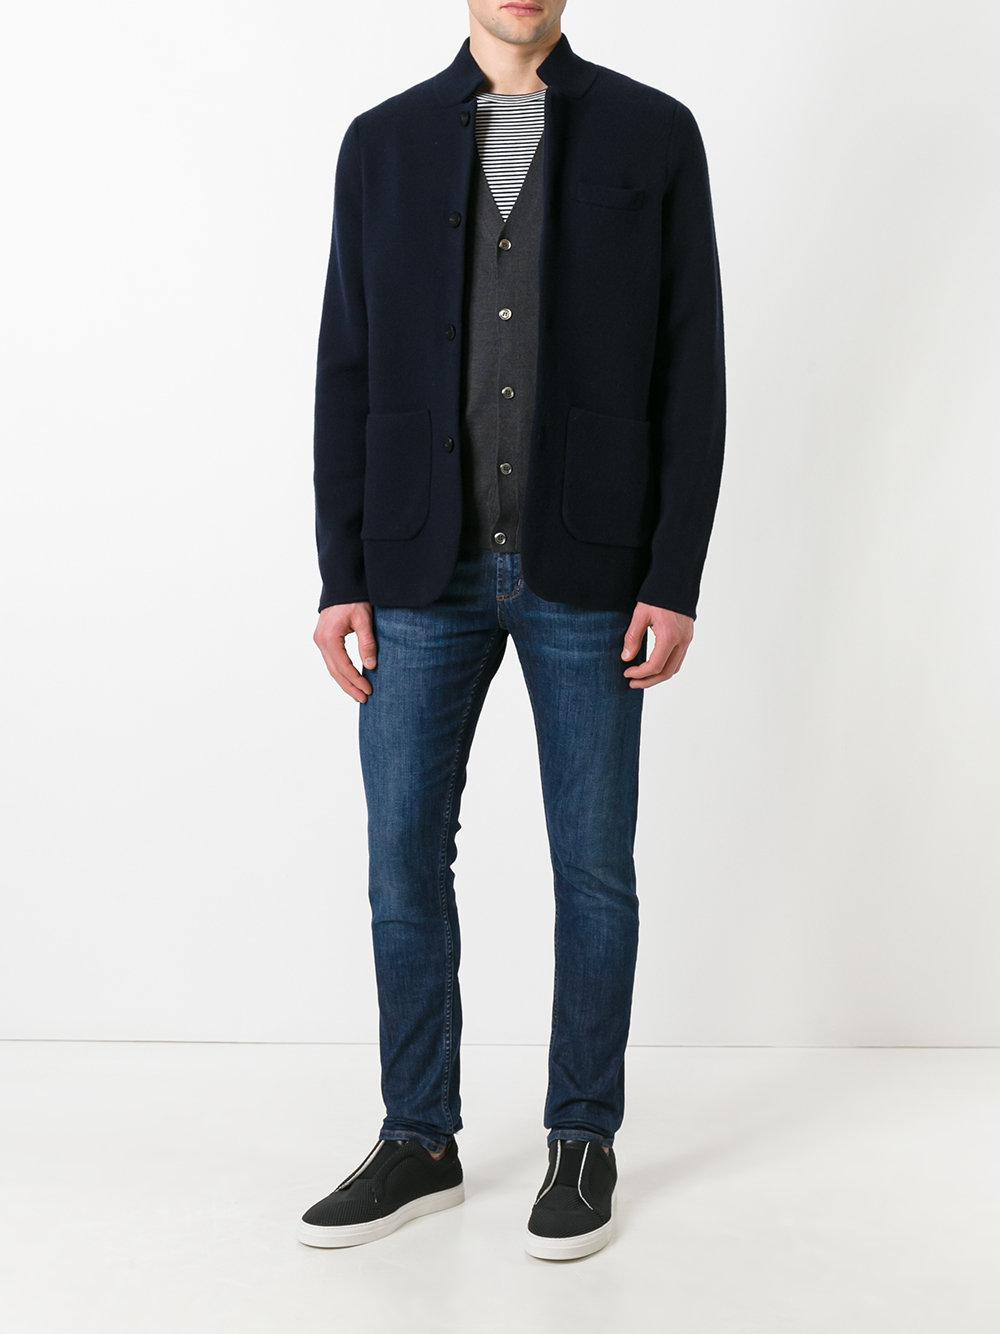 N.Peal Cashmere Cashmere Milano Jacket in Blue for Men